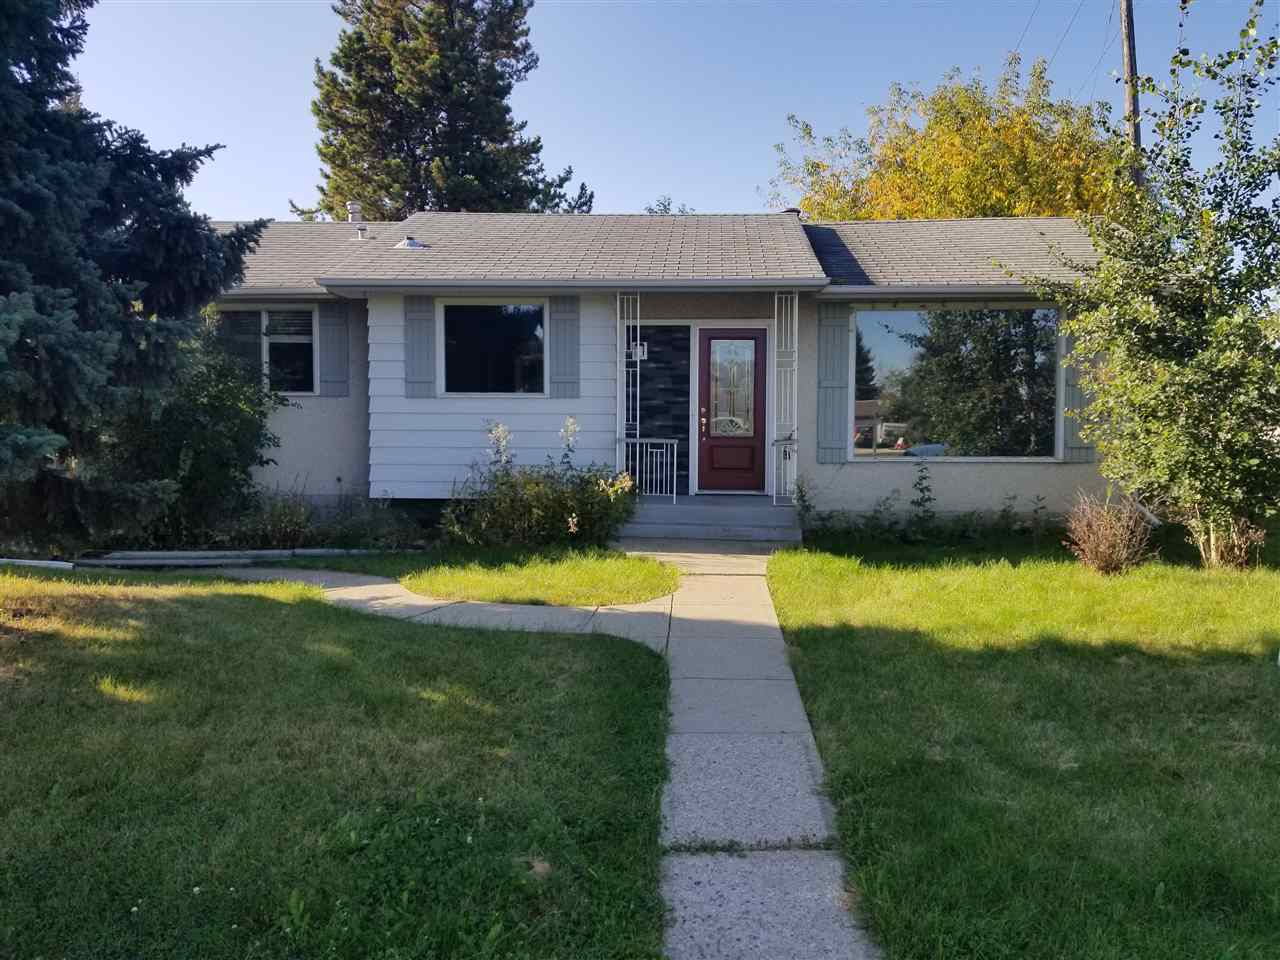 Great location on the bus route. close to schools and shopping. Home needs to be updated. Fireplace in the living room.